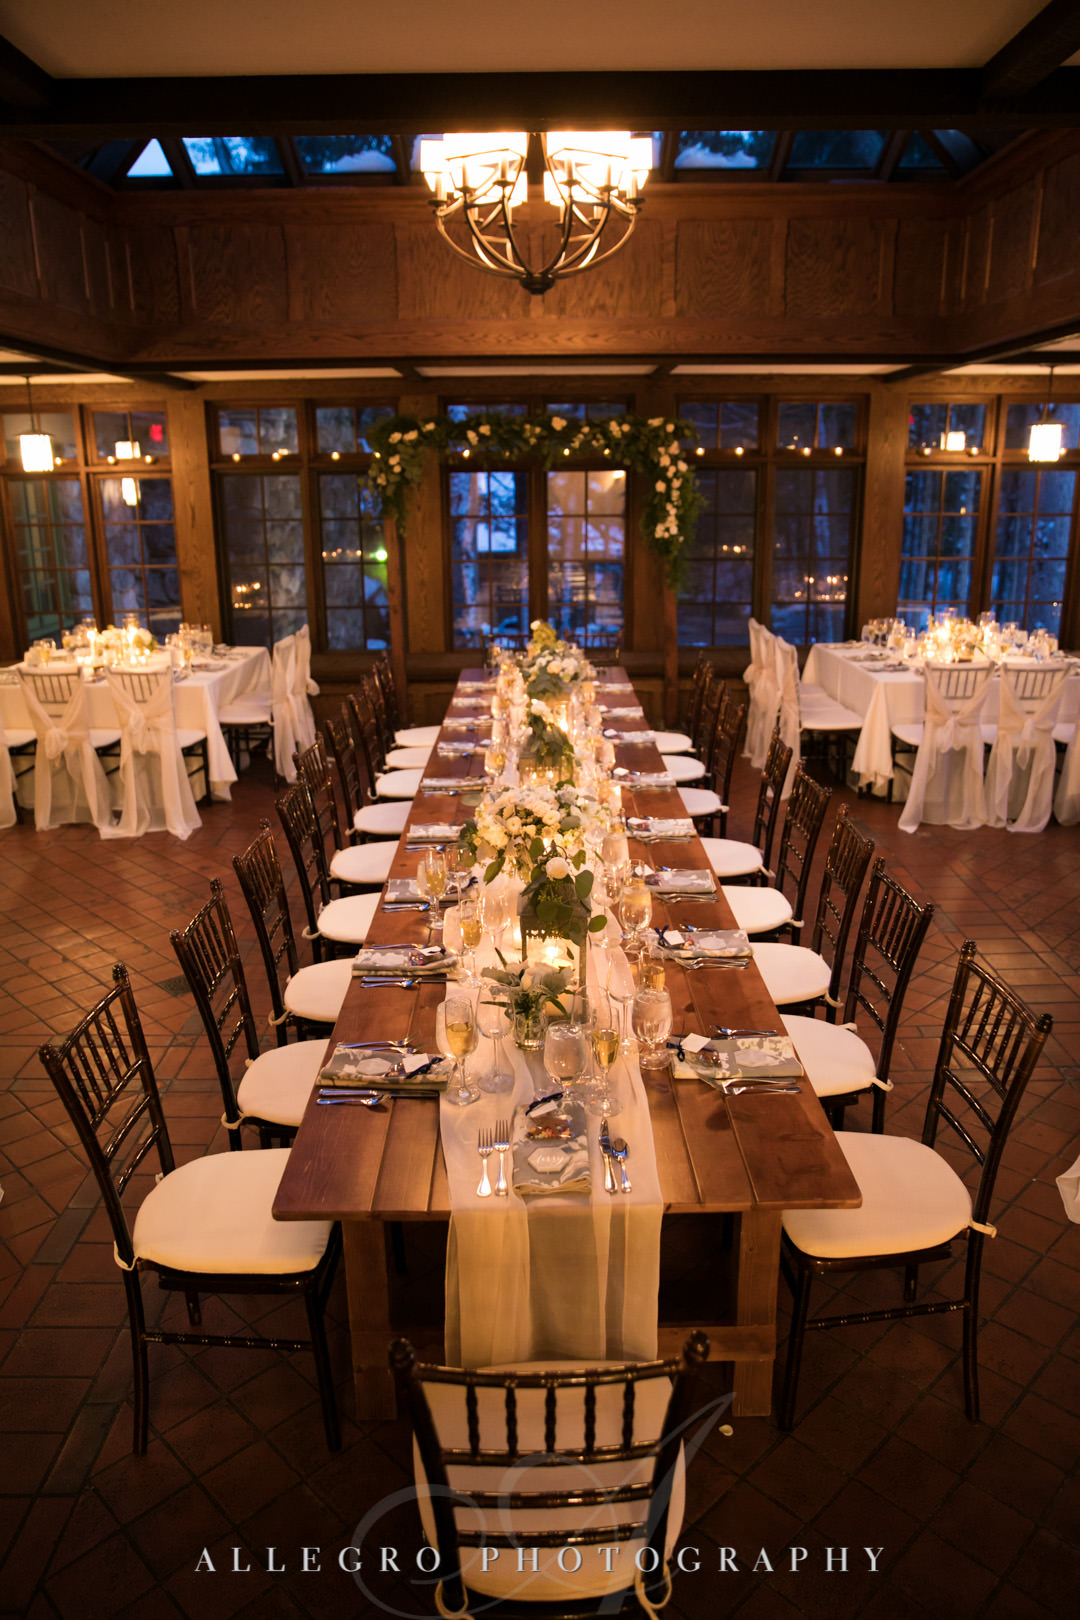 Wedding dining table with rustic design